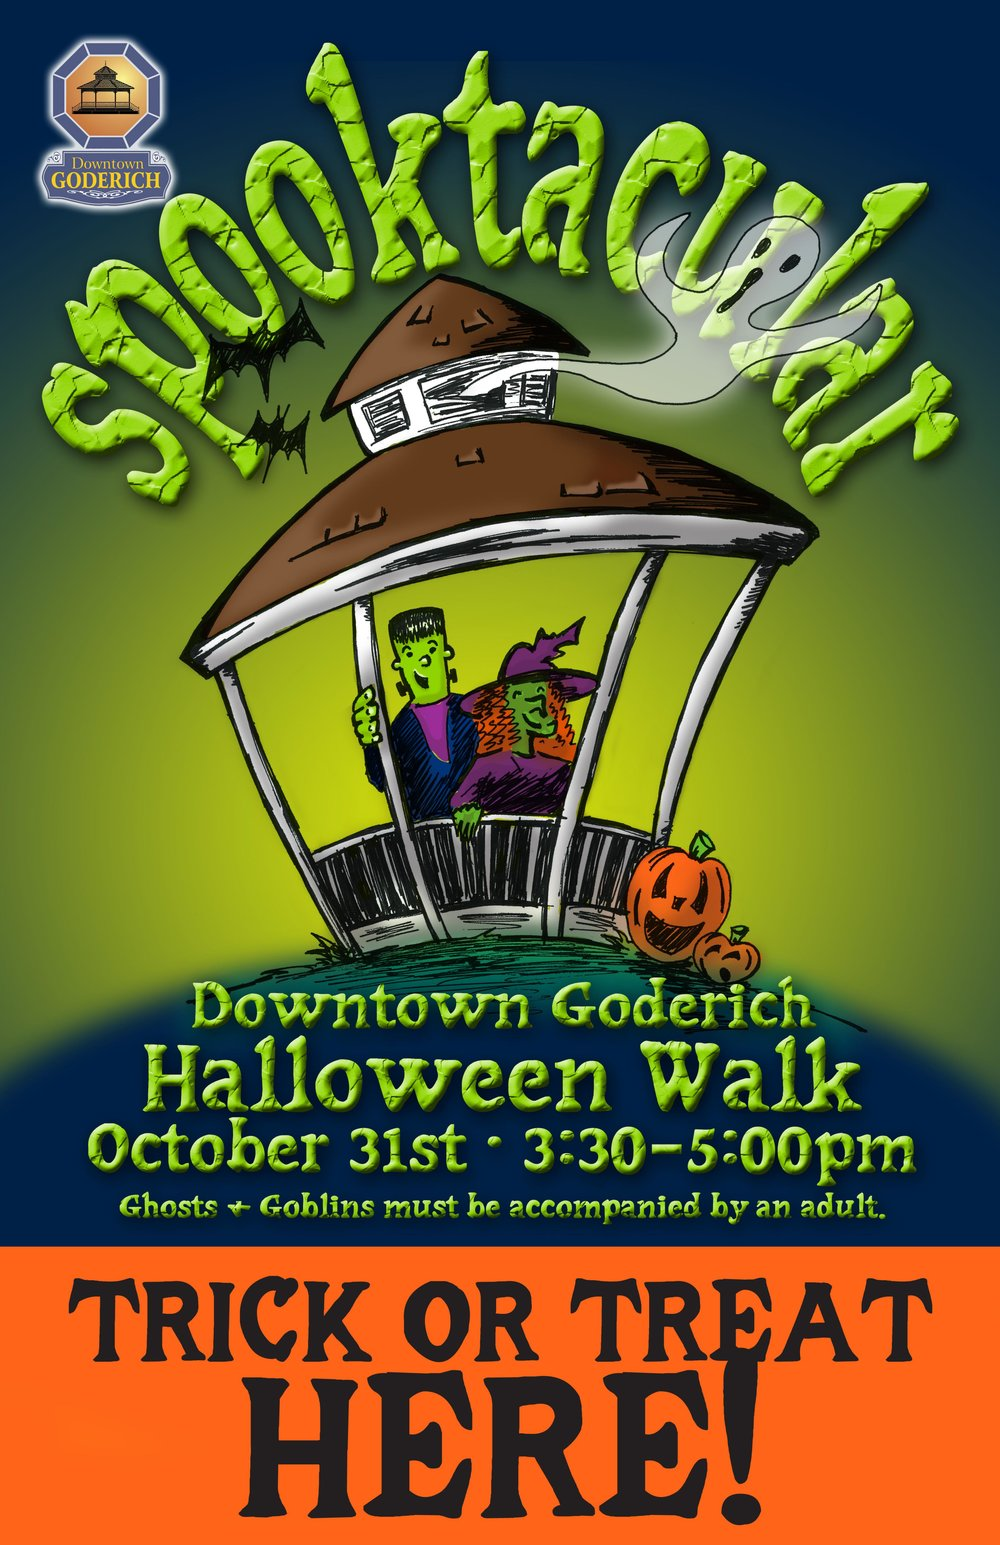 Free event sponsored by the Downtown Goderich BIA businesses. Family Friendly. Appropriate for all ages.